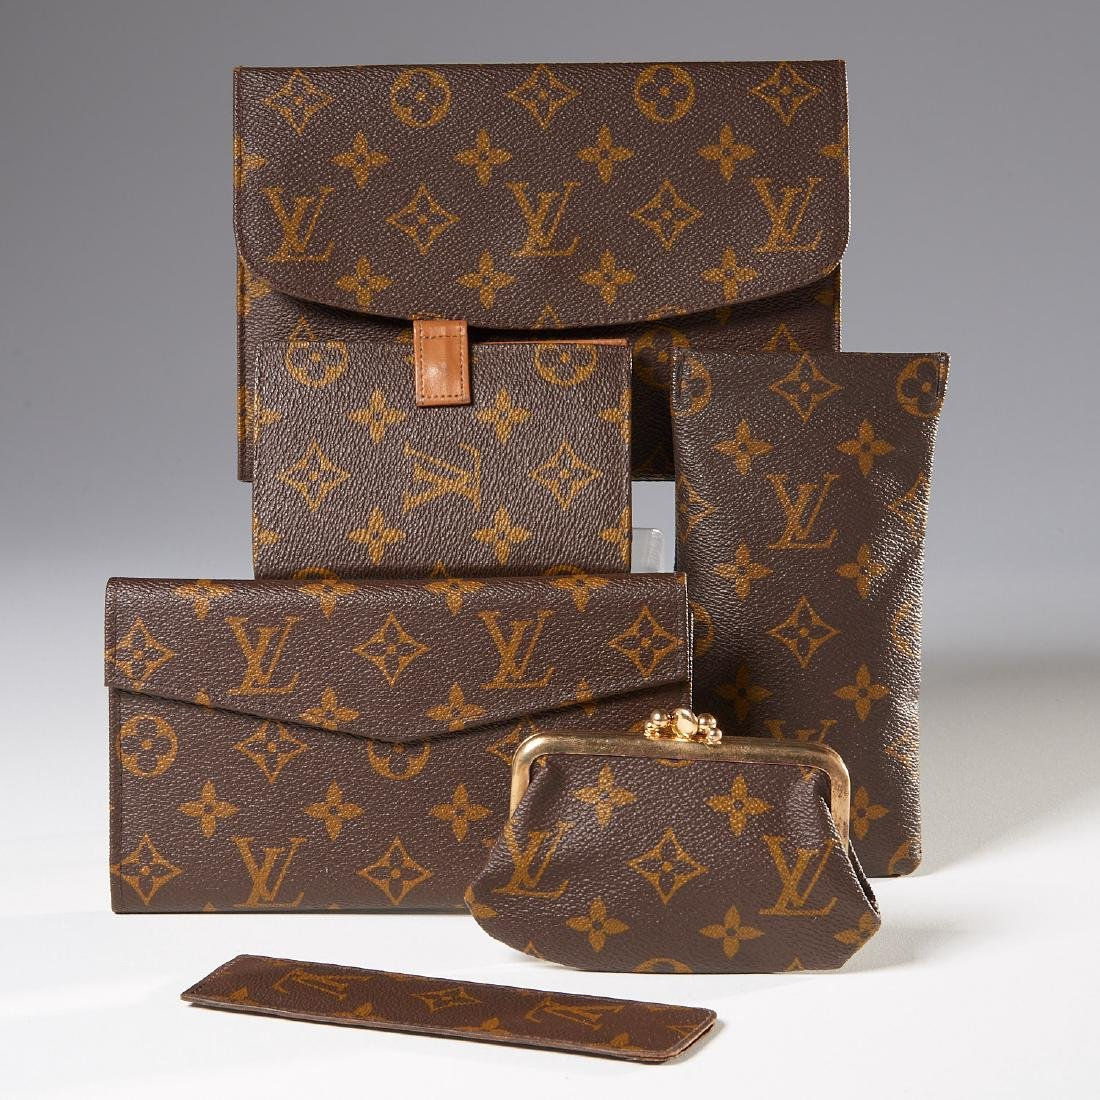 Group of Louis Vuitton Monogram accessories